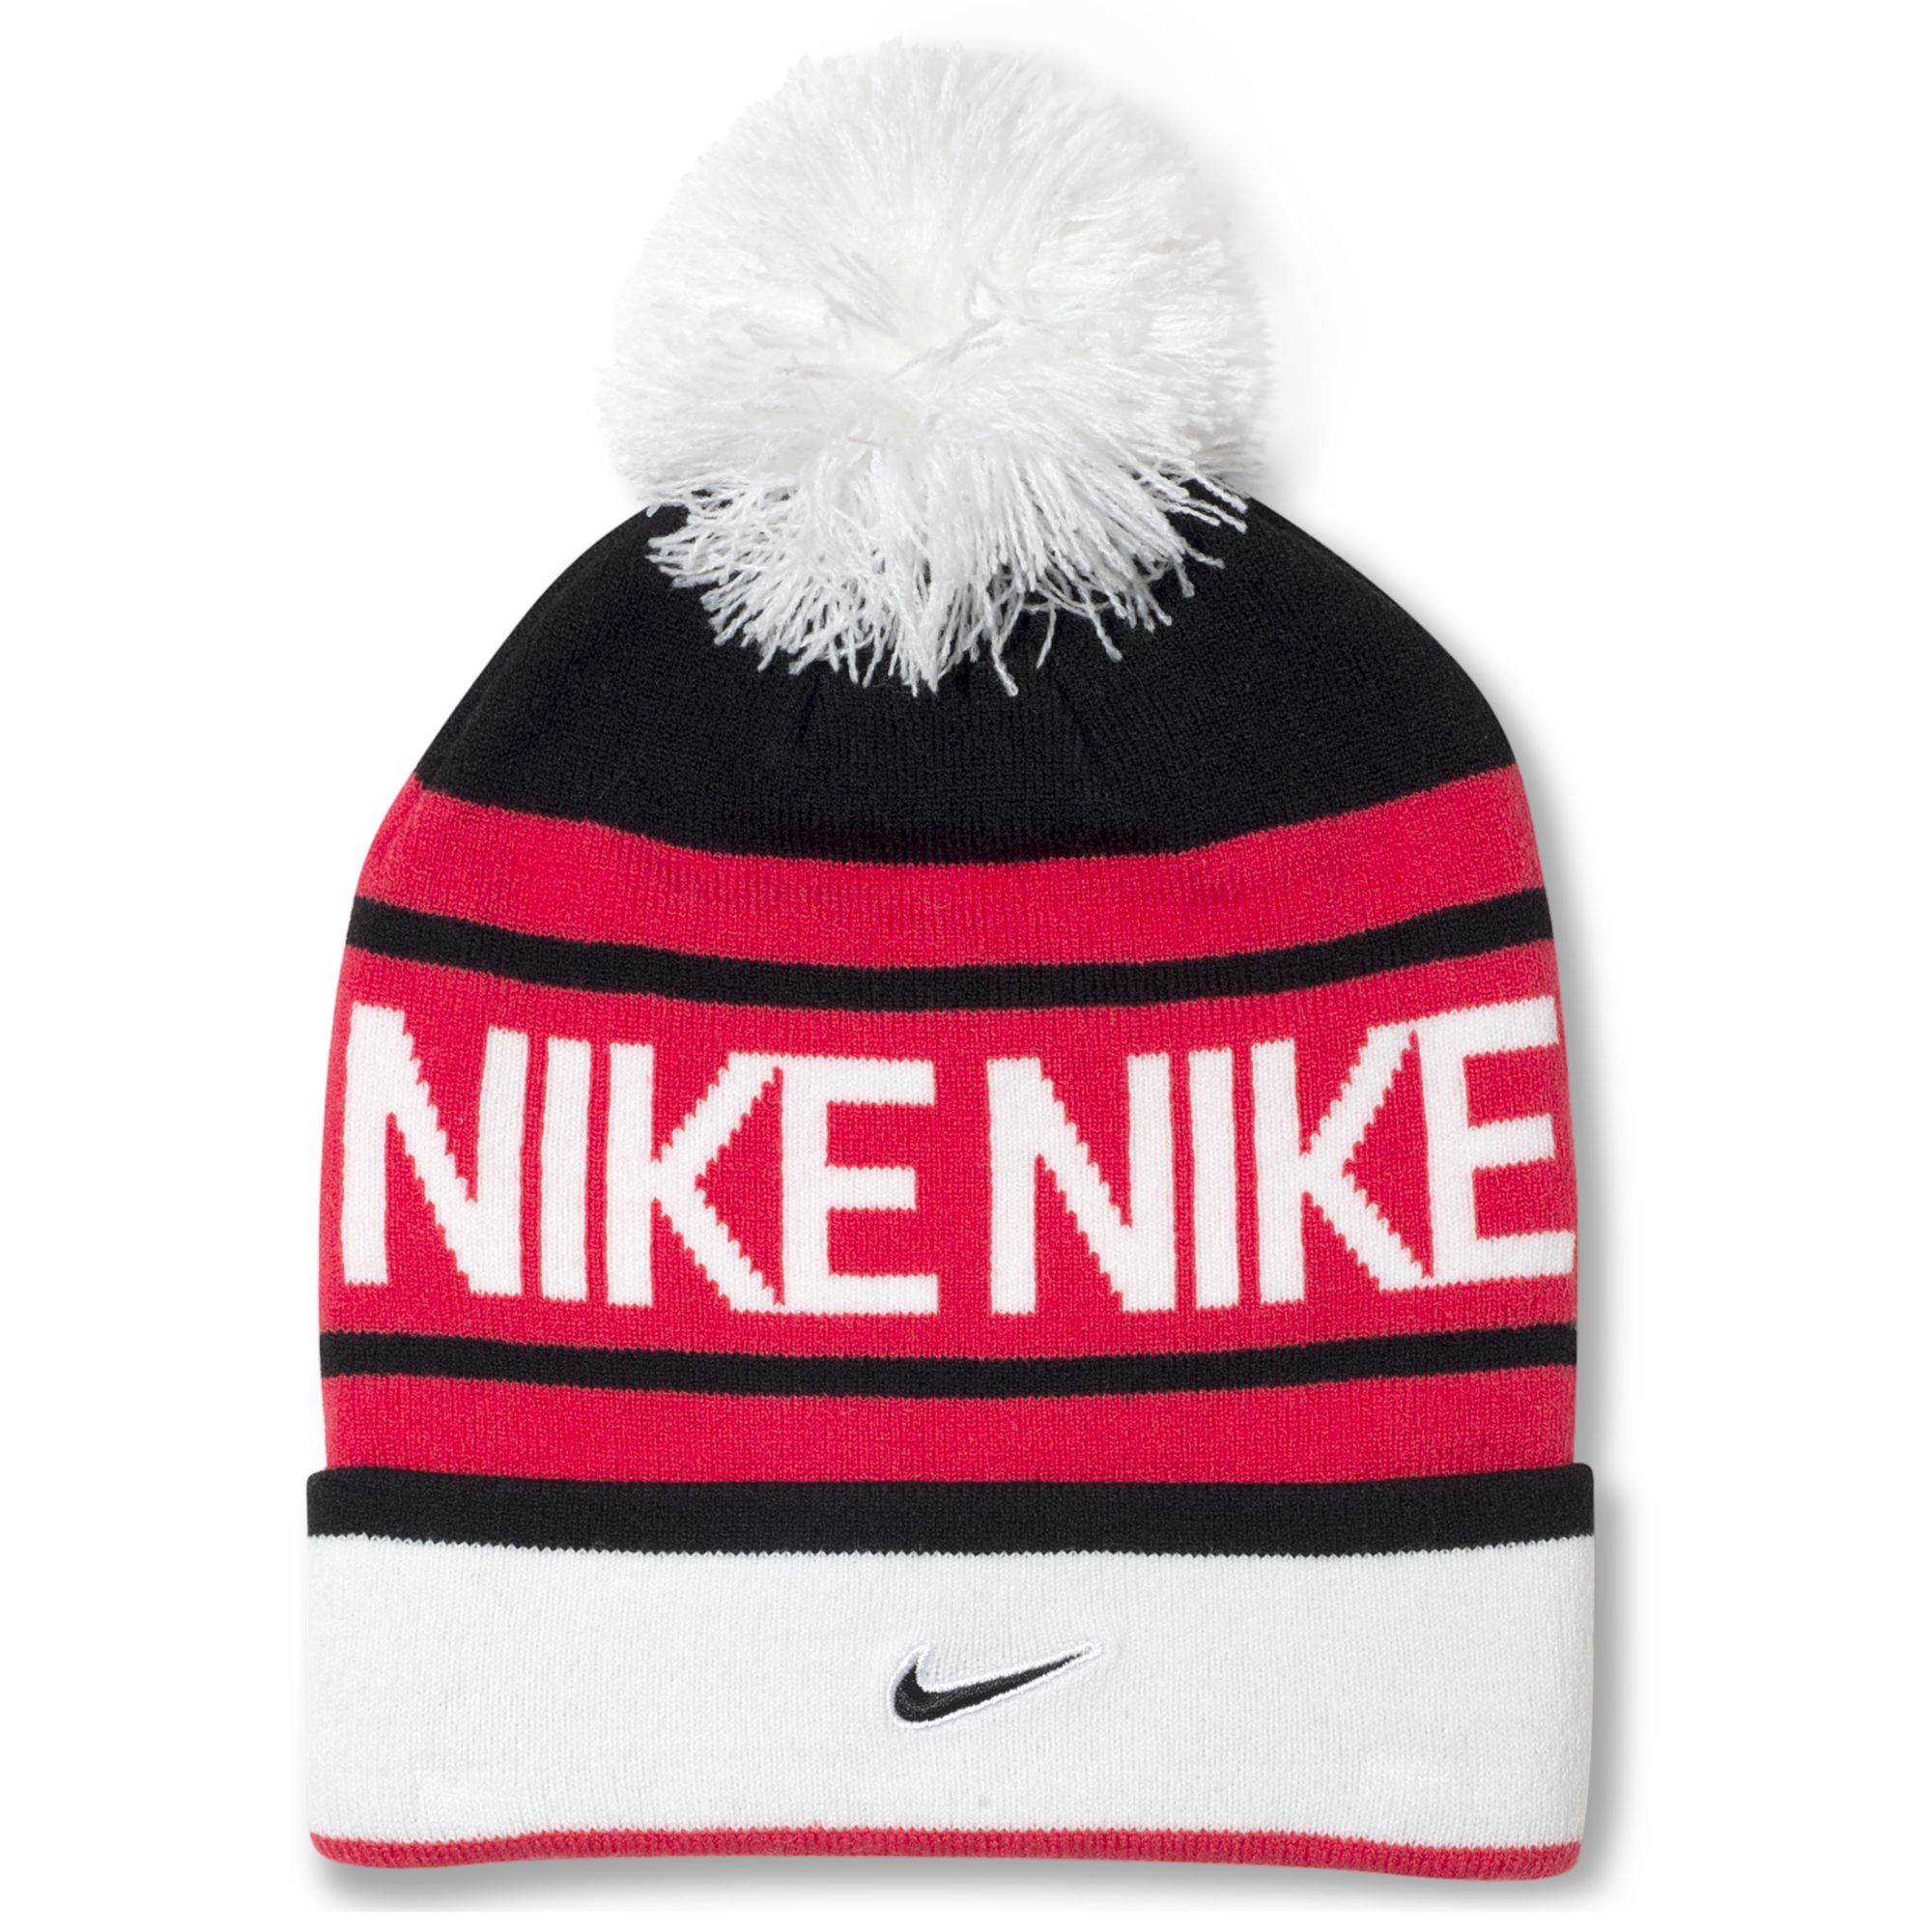 660806d5f66 ... shop lyst nike pom pom beanie in red for men 1db36 515e2 ...